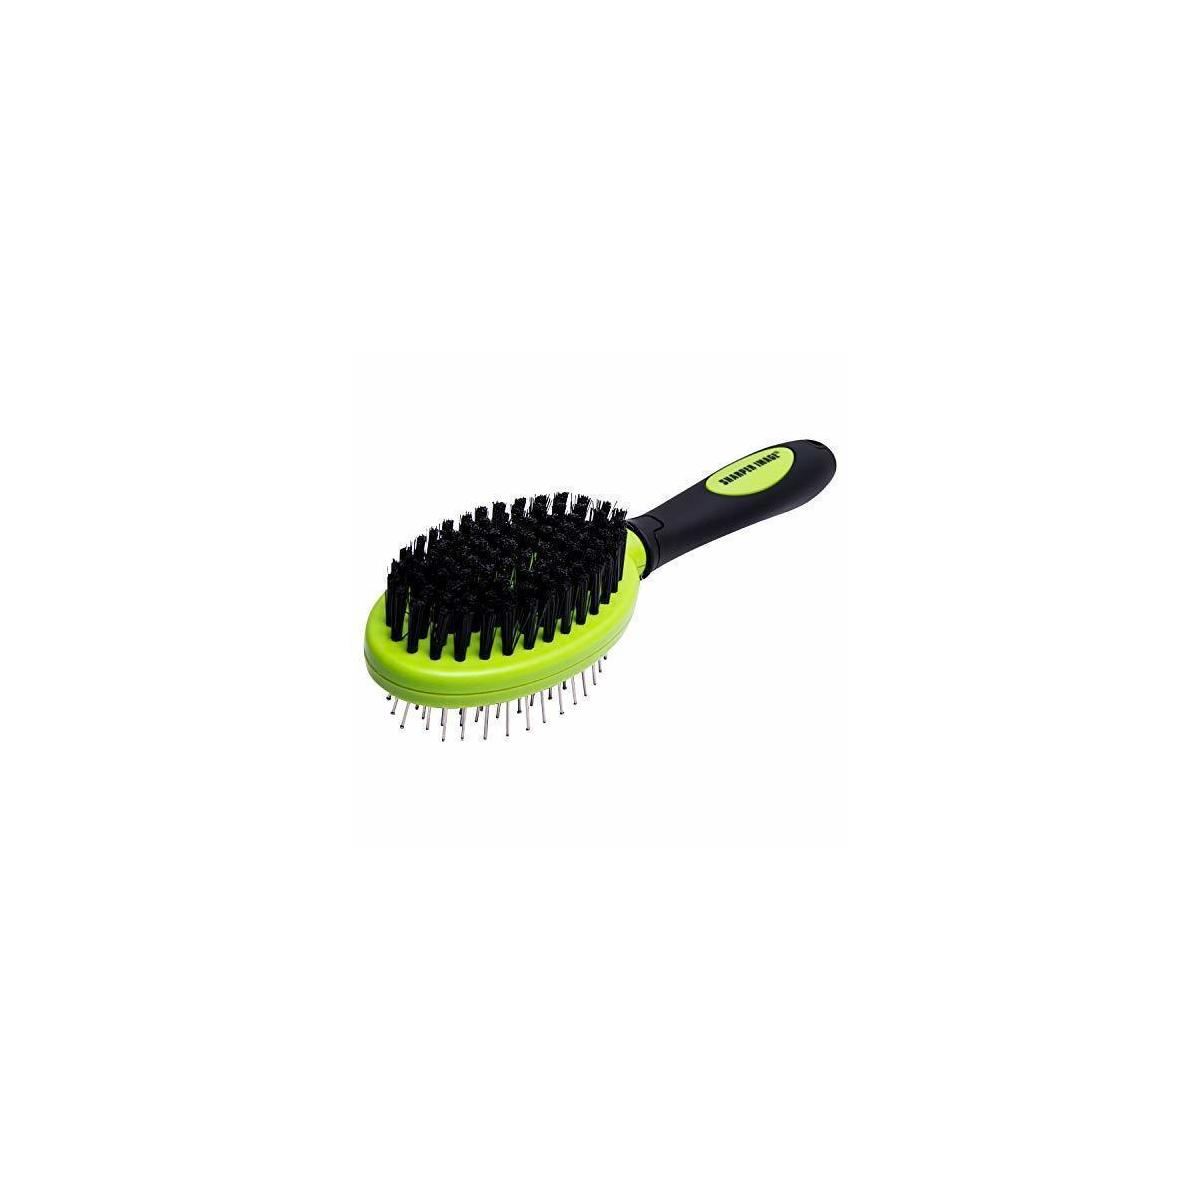 Sharper Image Pet Brush, Dog Brush & Cat Brush, Pet Grooming Comb, 2 Sided Bristle & Pin for Long Hair & Short Hair Dog, Removing Shedding Hair